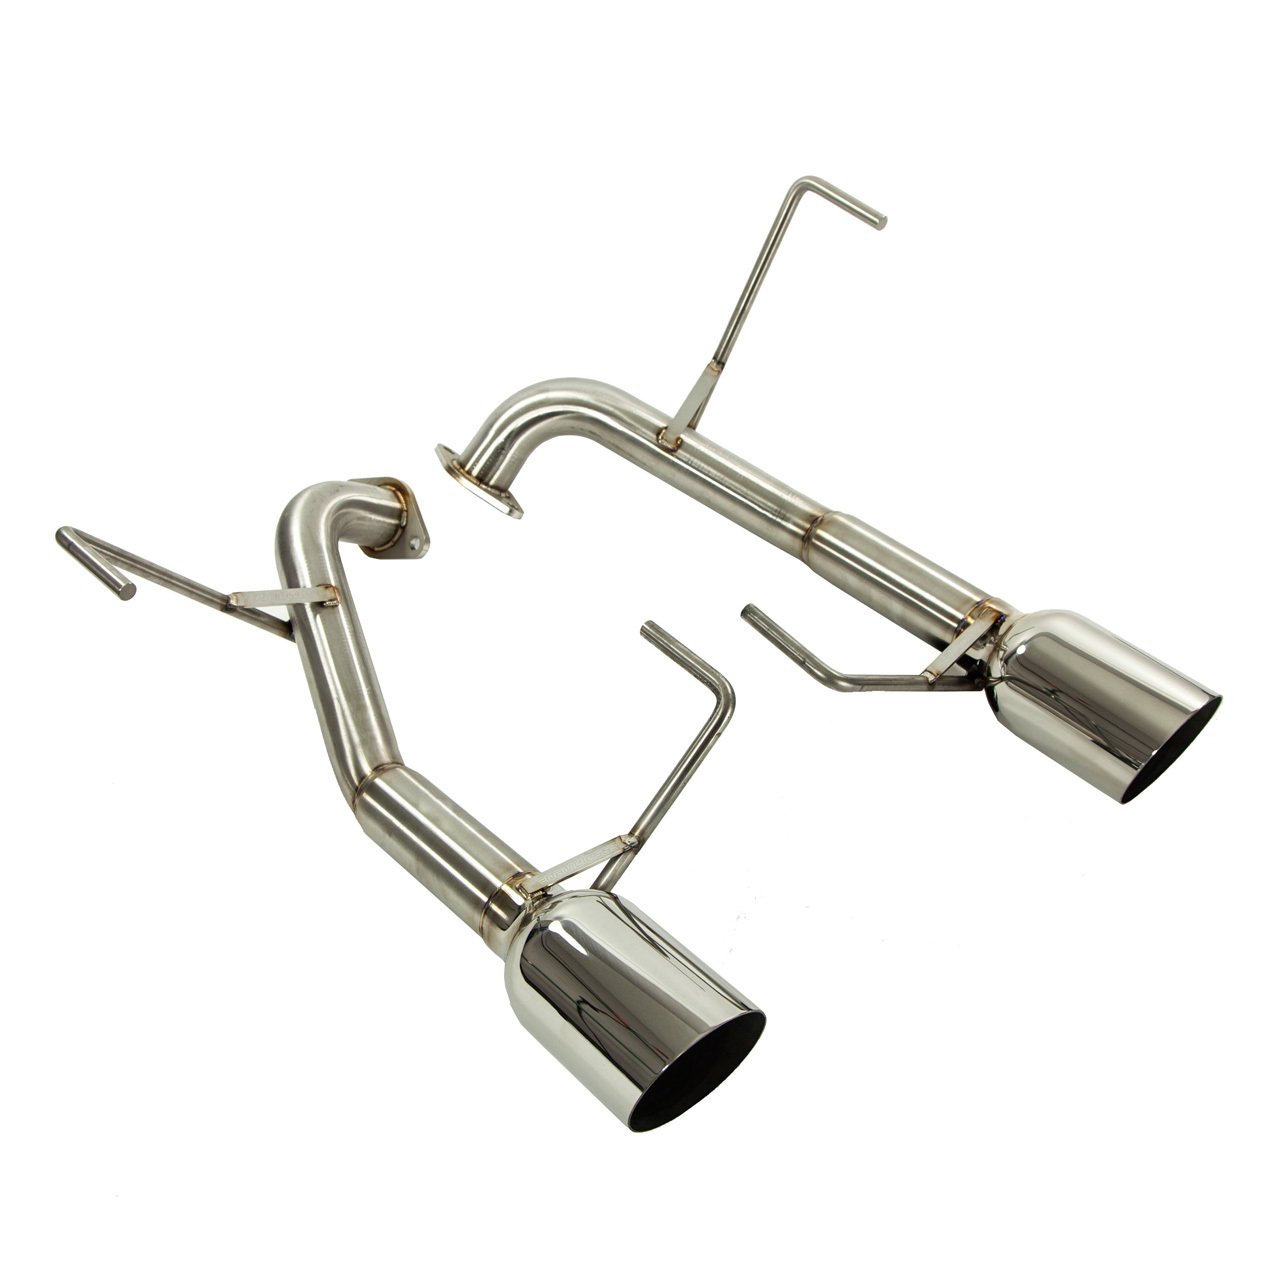 hight resolution of muffler delete axle back exhaust 4 tips liberty gt wagon 04 09